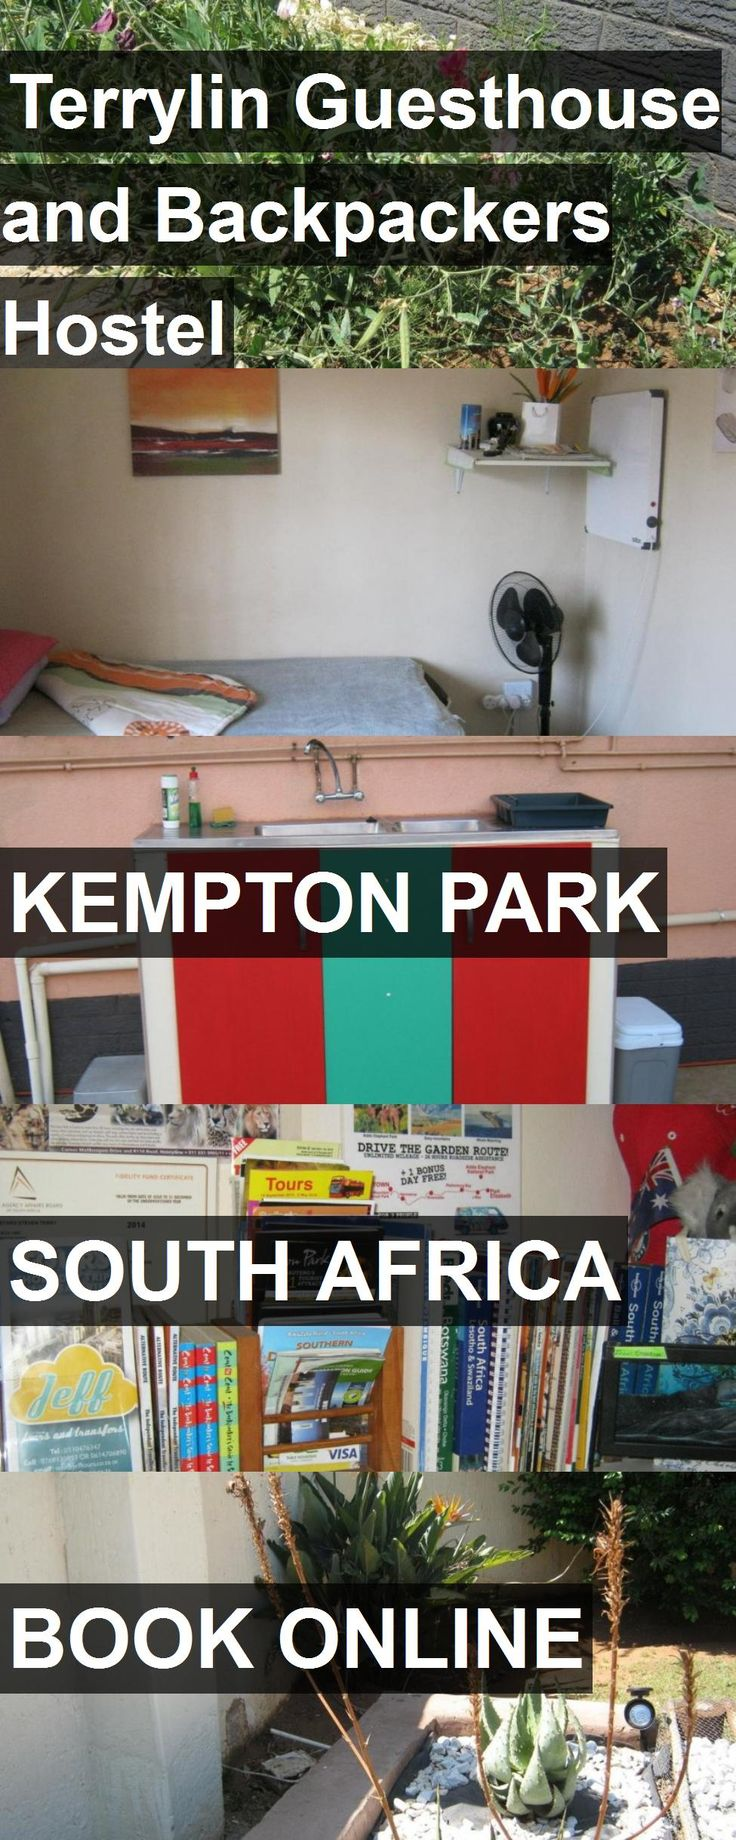 Hotel Terrylin Guesthouse and Backpackers Hostel in Kempton Park, South Africa. For more information, photos, reviews and best prices please follow the link. #SouthAfrica #KemptonPark #TerrylinGuesthouseandBackpackersHostel #hotel #travel #vacation